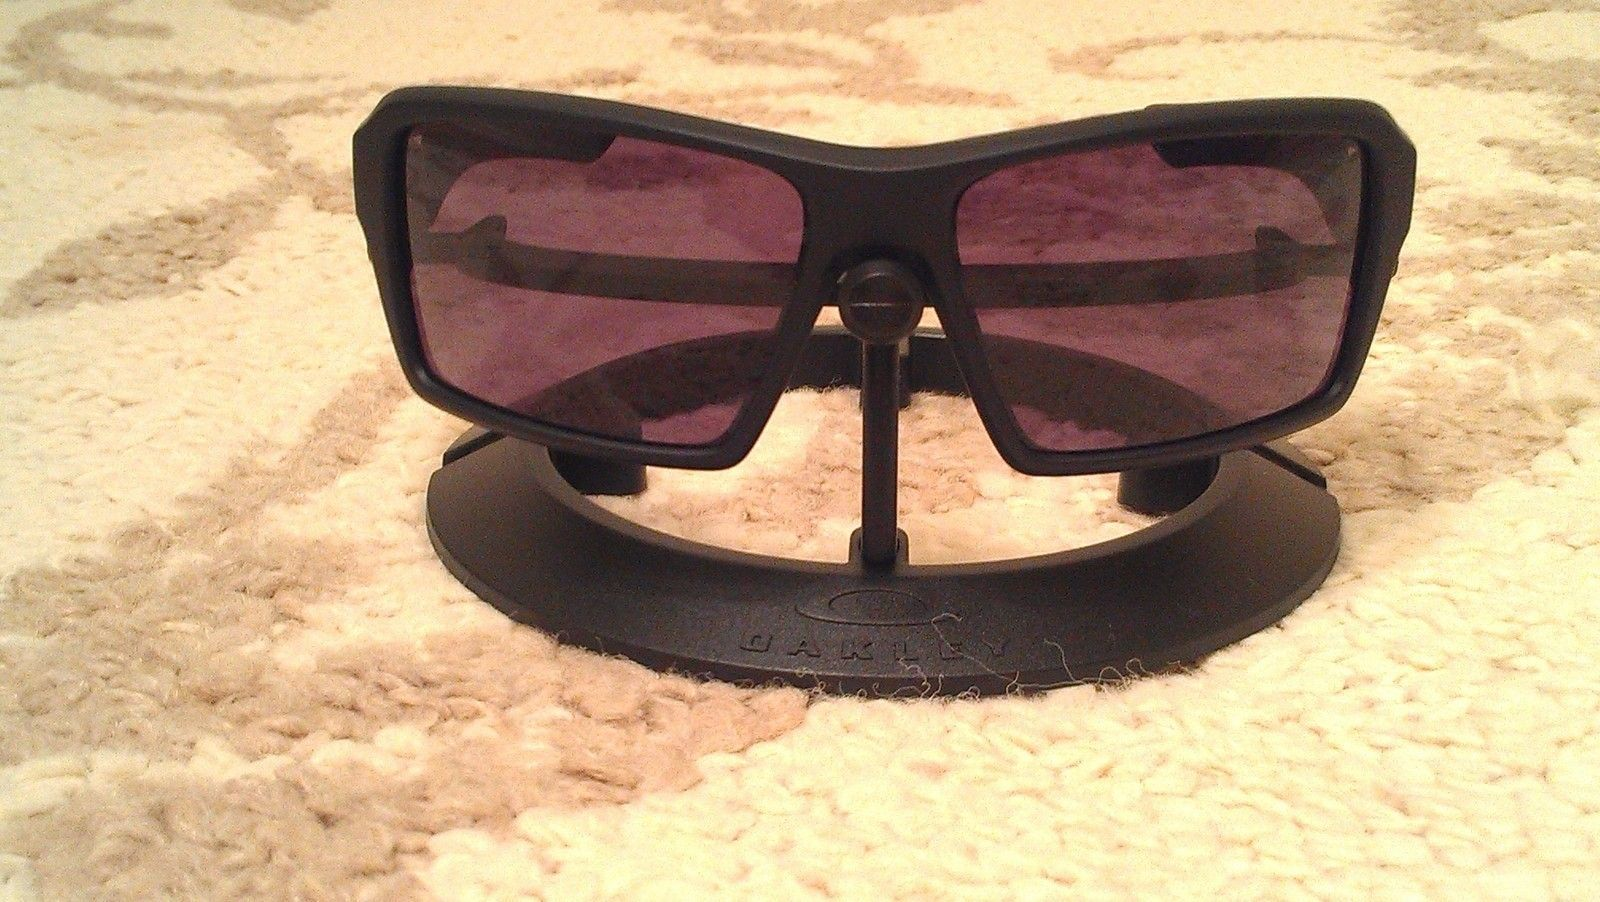 XS Polished Carbon/BIP + Brand New Oakley Eyepatch 2 - $325 OBO -- Make An Offer..Must Go - pu6l.jpg